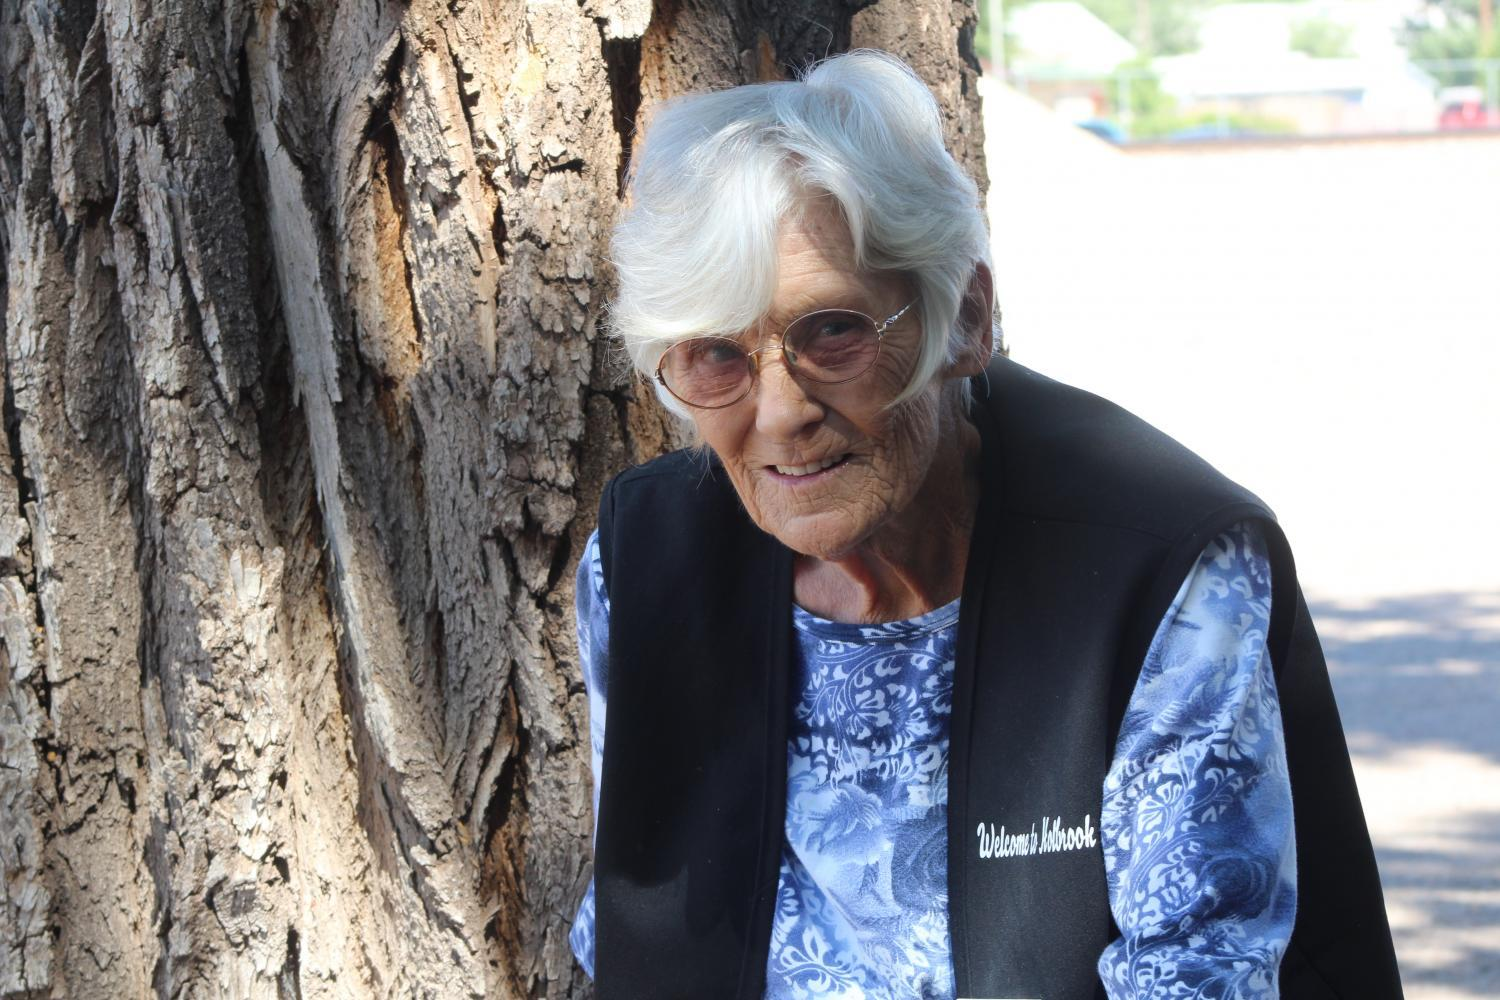 77-year-old JoLynn Fox is a volunteer with the Navajo County Historical Society and Museum.